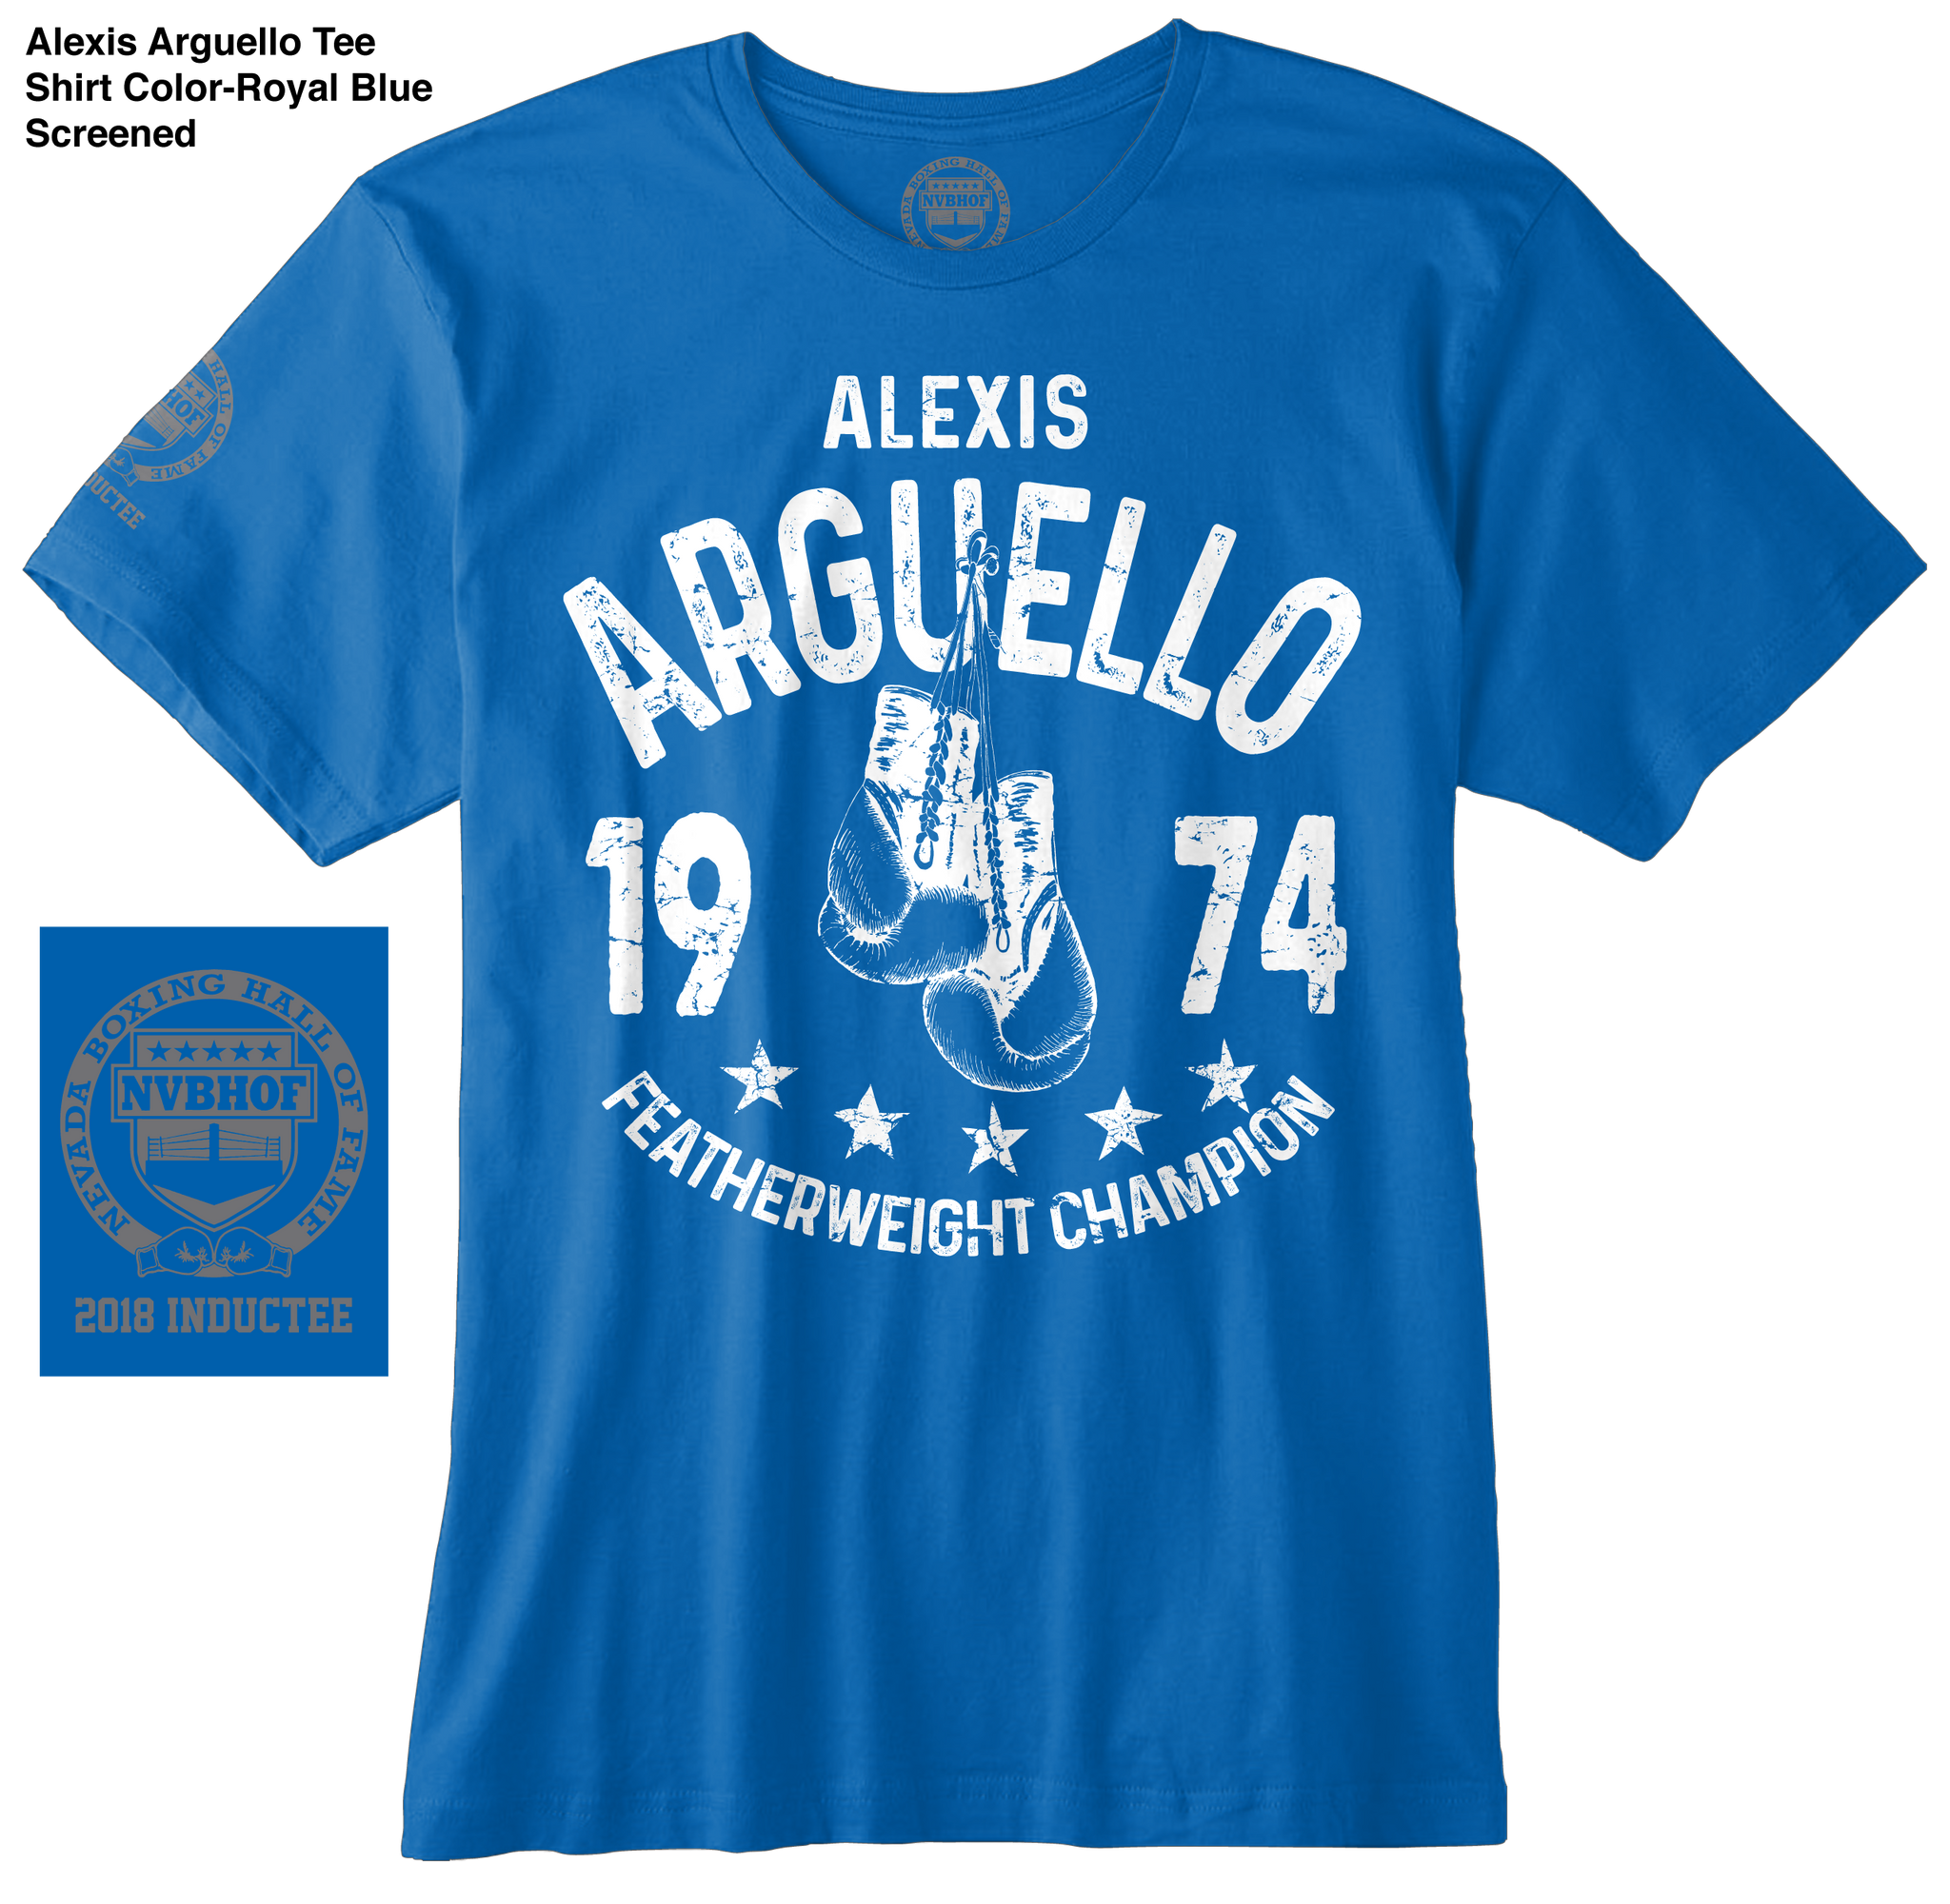 ALEXIS ARGUELLO OFFICIAL NVBHOF T-SHIRT - 2018 INDUCTEE